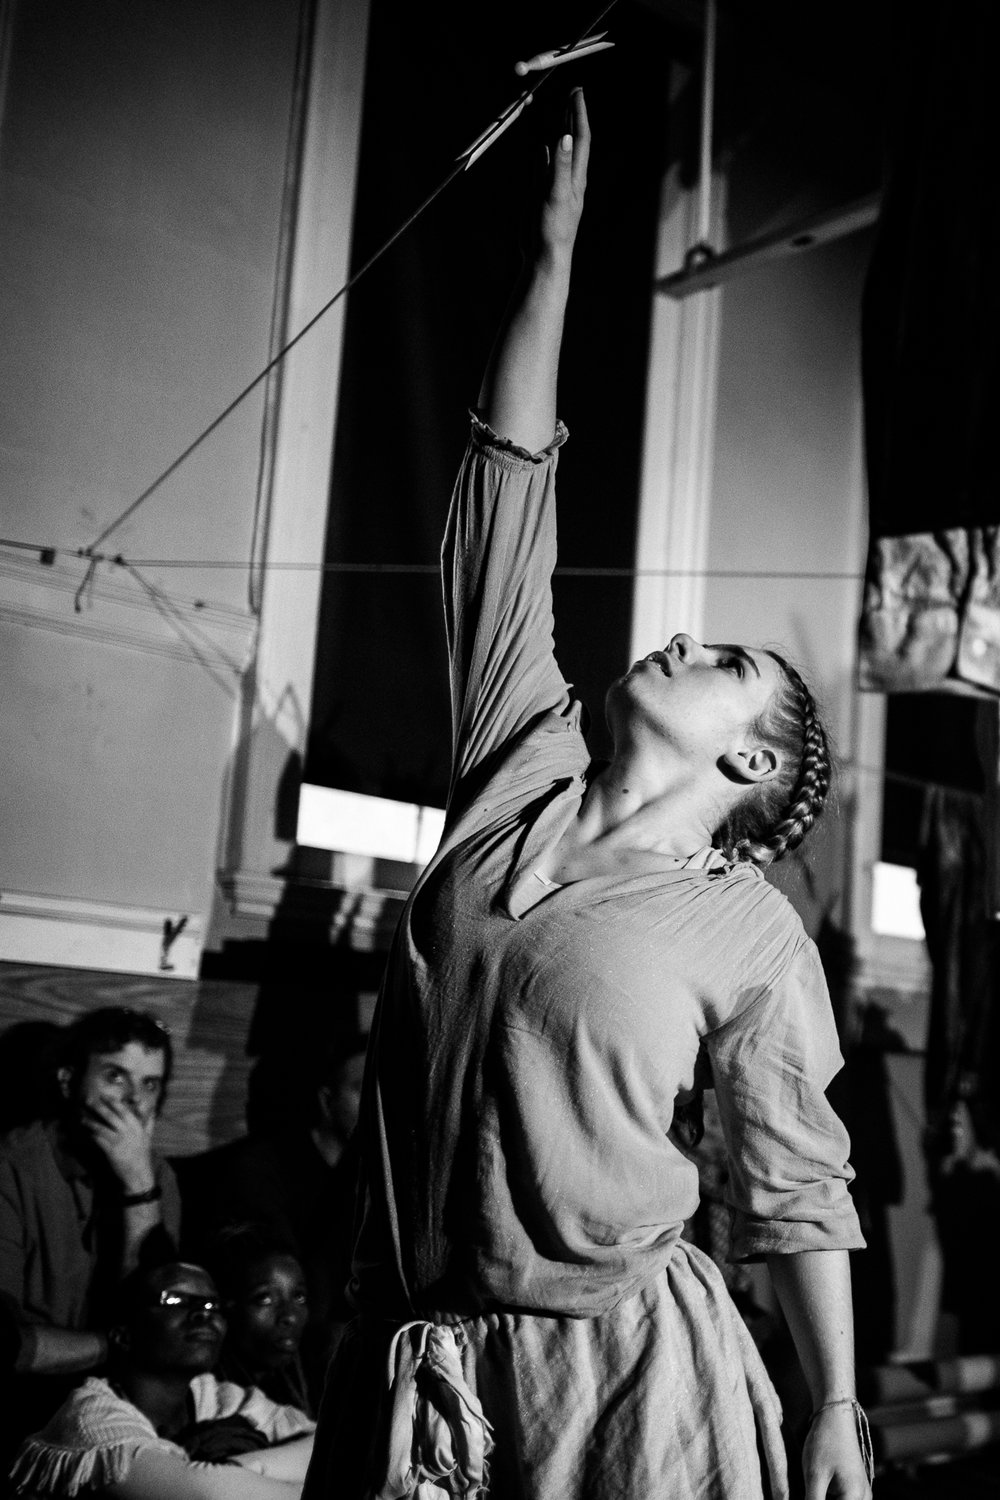 Restoke You Are Here Matinee and Final Night Performance Show Dance Spoken Word Poetry Music Culture Home Migration Belonging - Jenny Harper Photography-5.jpg